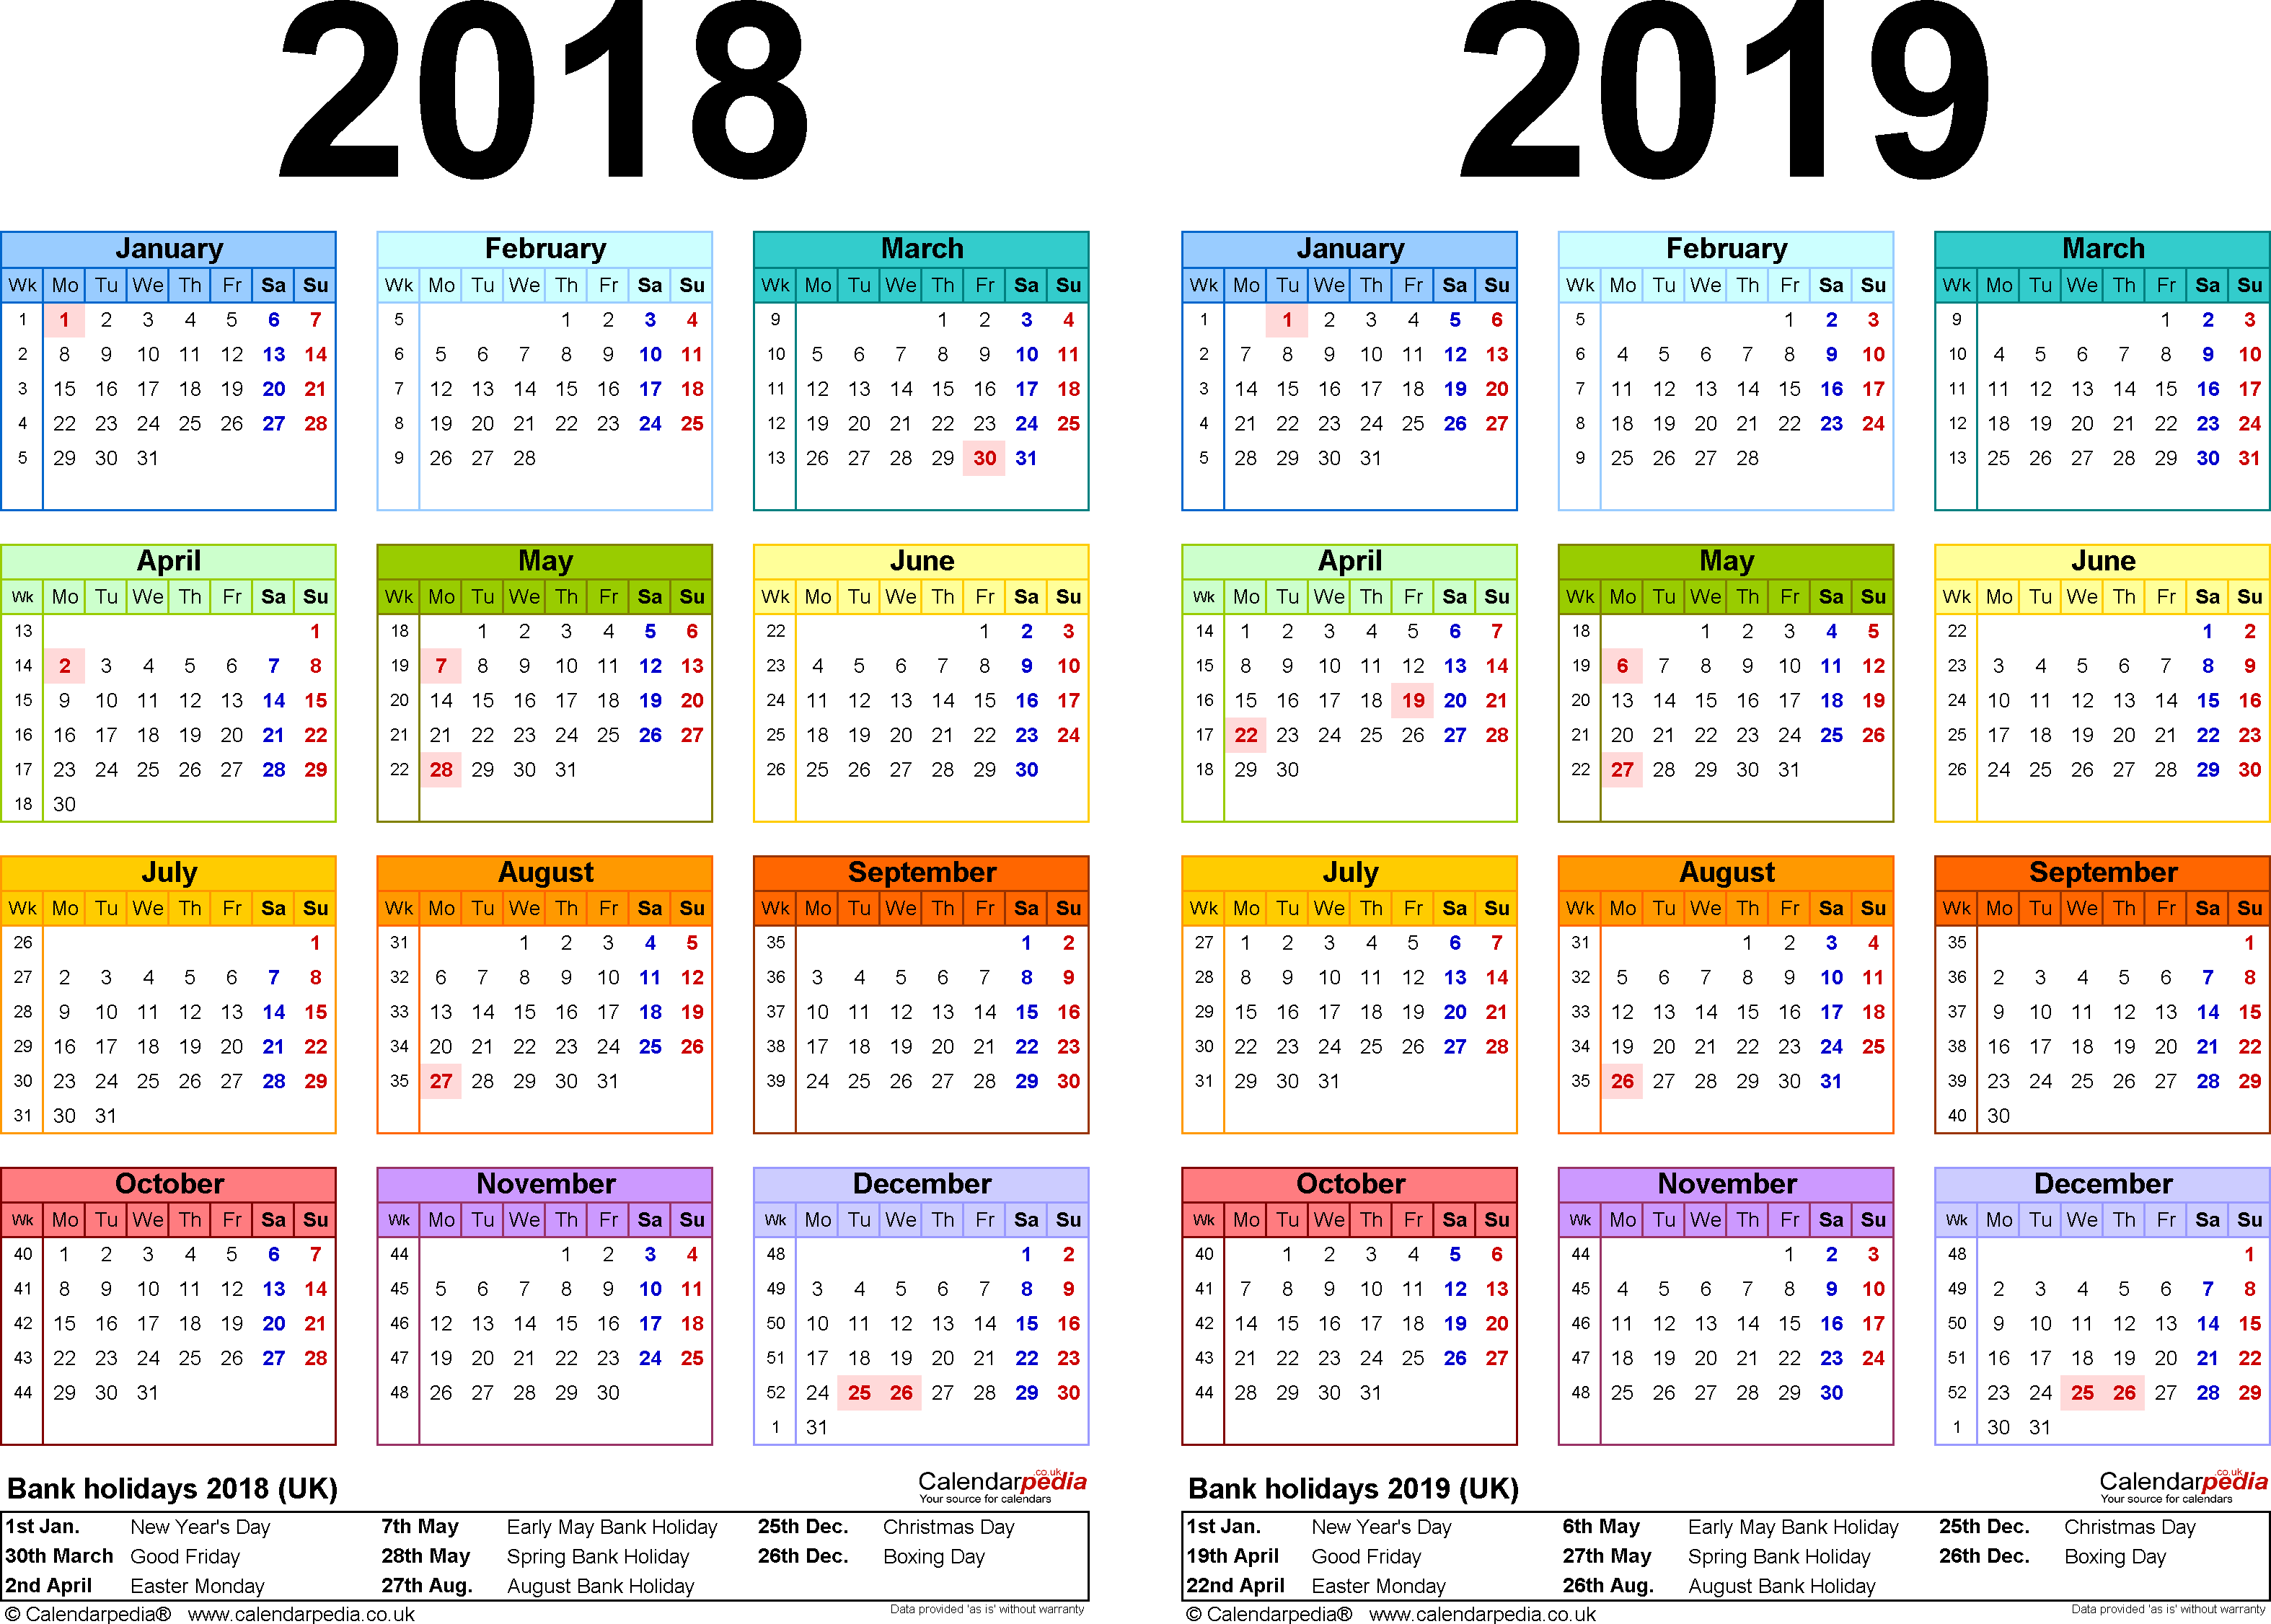 Download Template 2: Word template for two year calendar 2018/2019 in colour (landscape orientation, 1 page, A4)